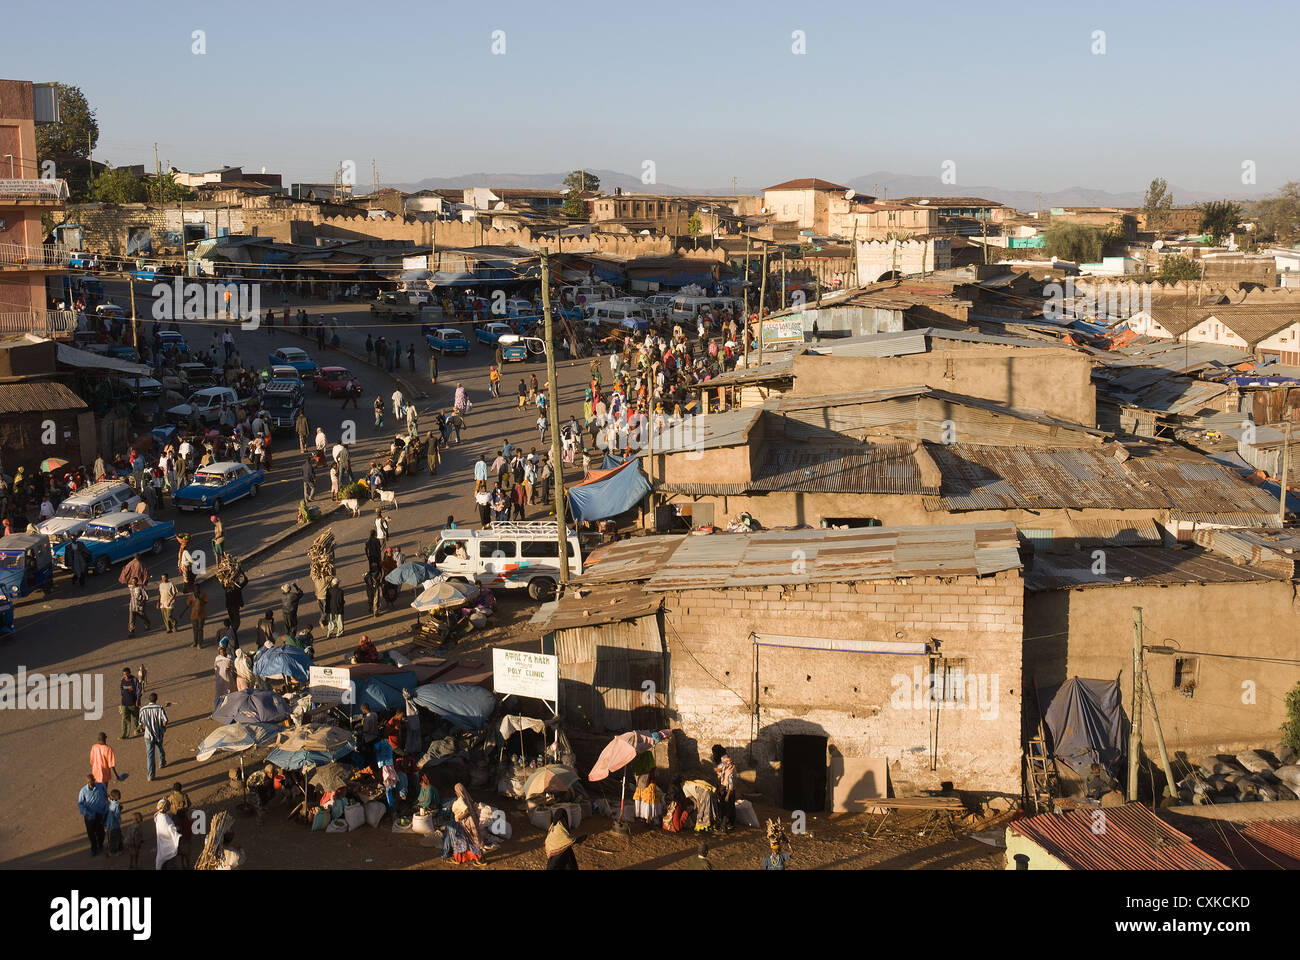 Elk200-4040 Ethiopia, Harar, city view - Stock Image